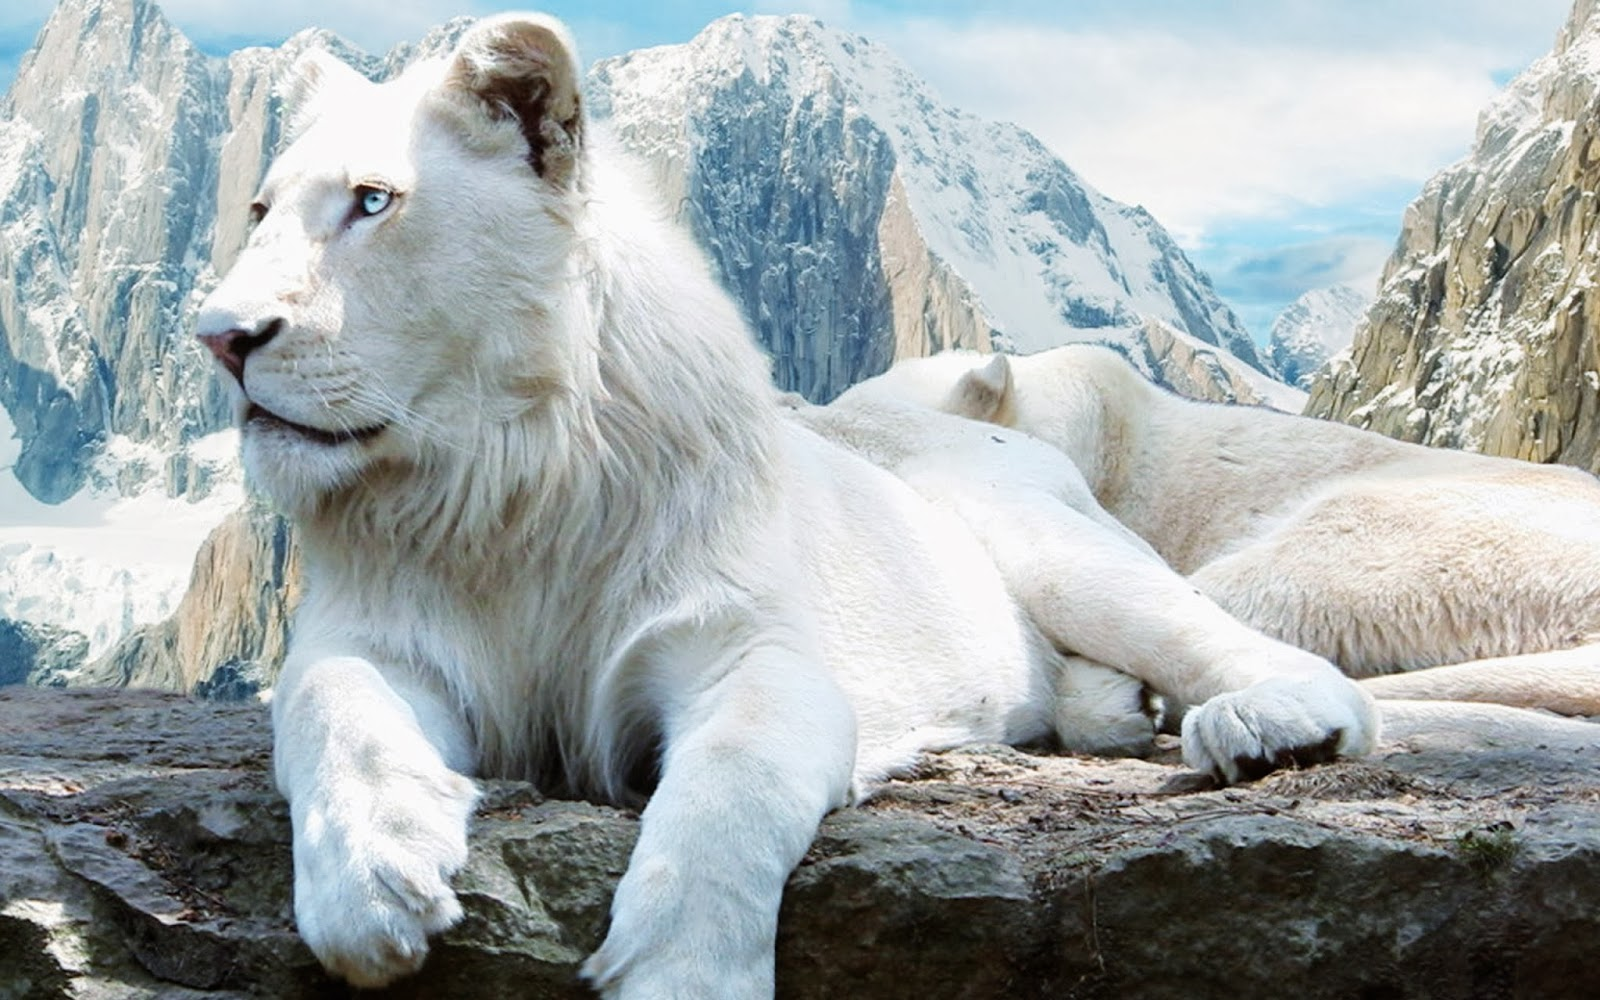 Hd Lion Pictures Lions Wallpapers: White Lions HD Funny Wallpapers